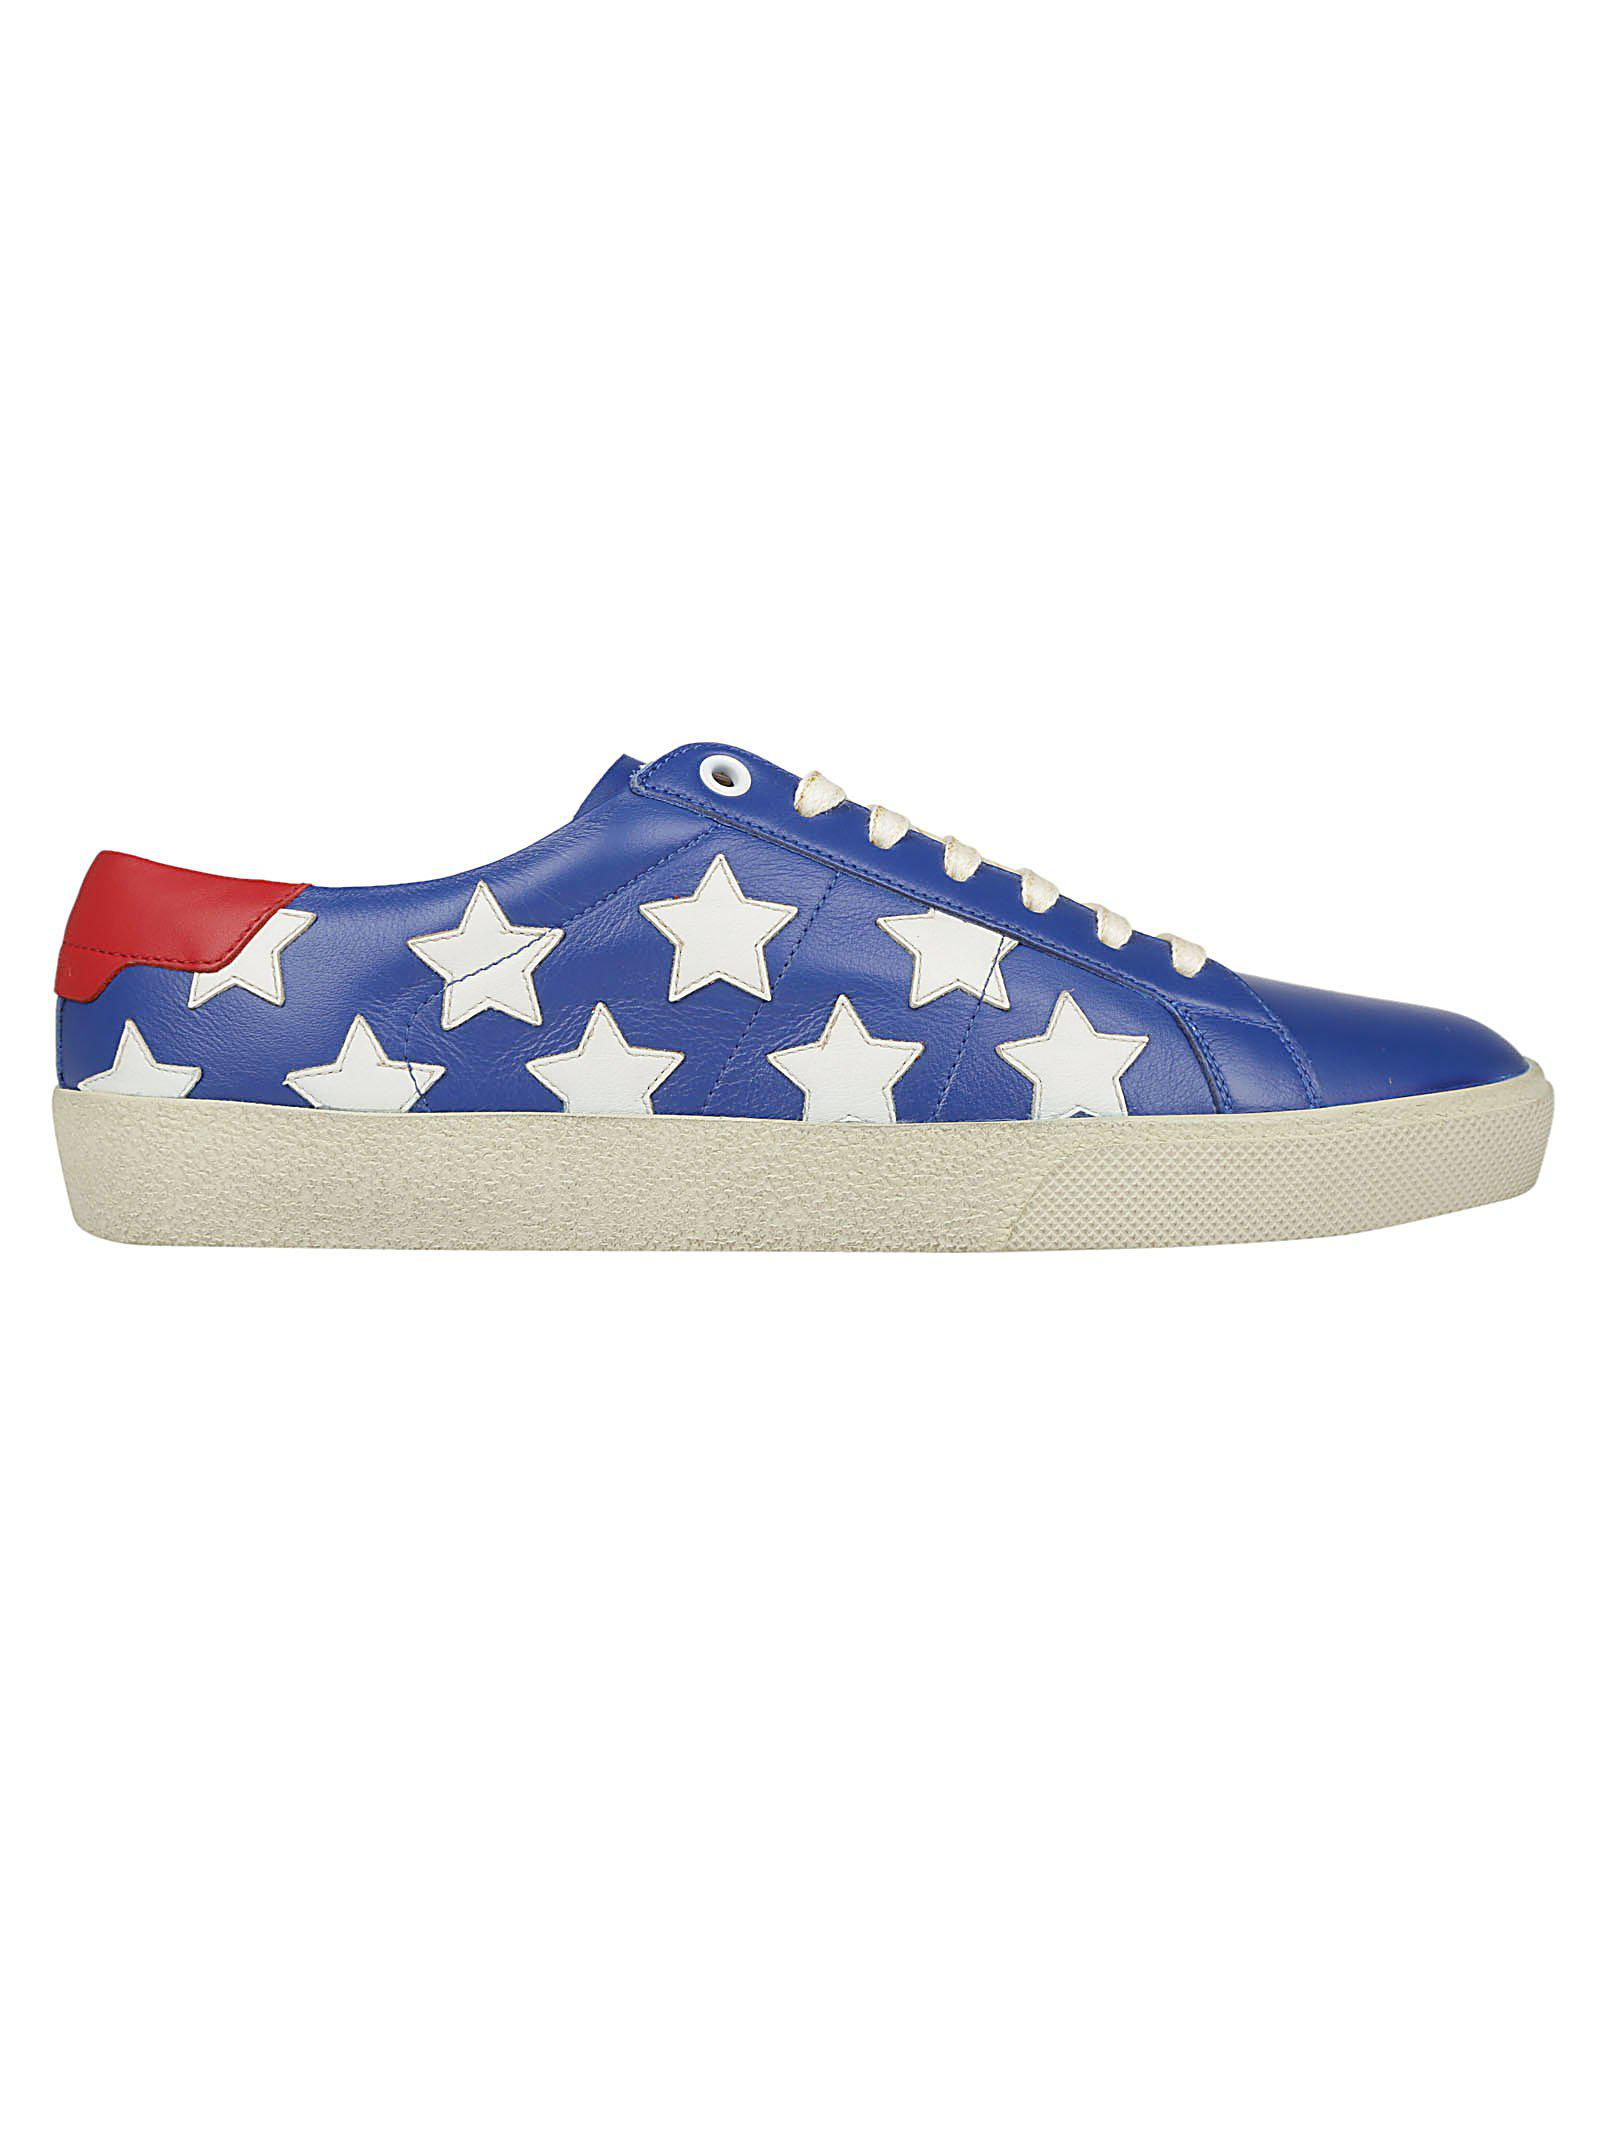 8d55348b018 Lyst - Saint Laurent Star Print Sneakers in Blue - Save 20%